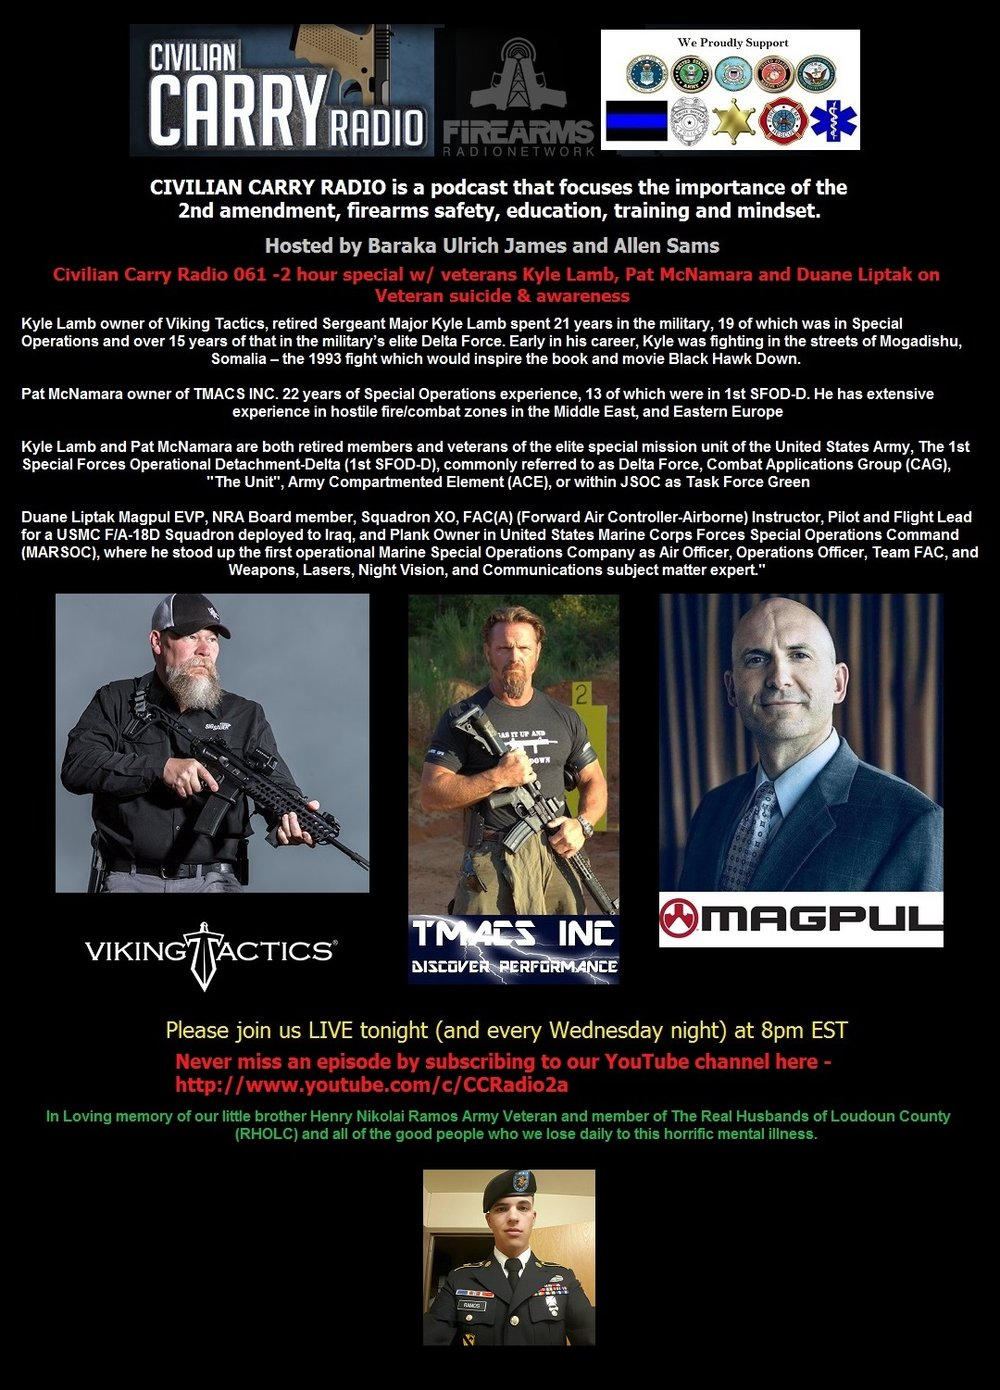 Civilian Carry Radio 061 -2 hour special w veterans Kyle Lamb, Pat McNamara and Duane Liptak.jpg